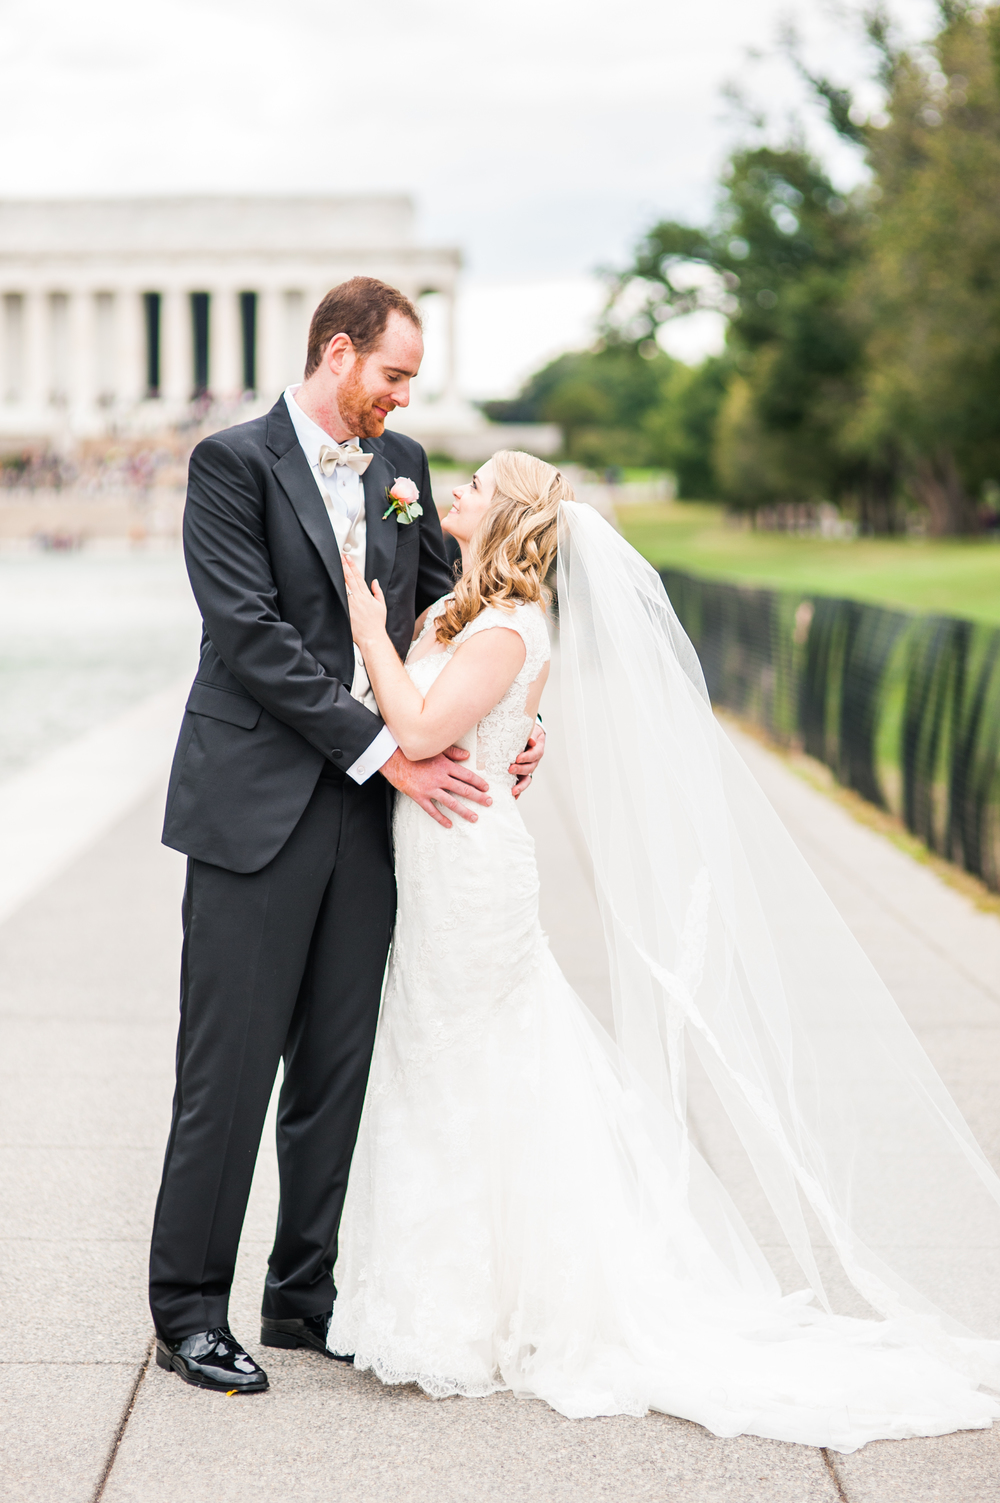 washingtondcweddingphotographersarahhoustonphotography